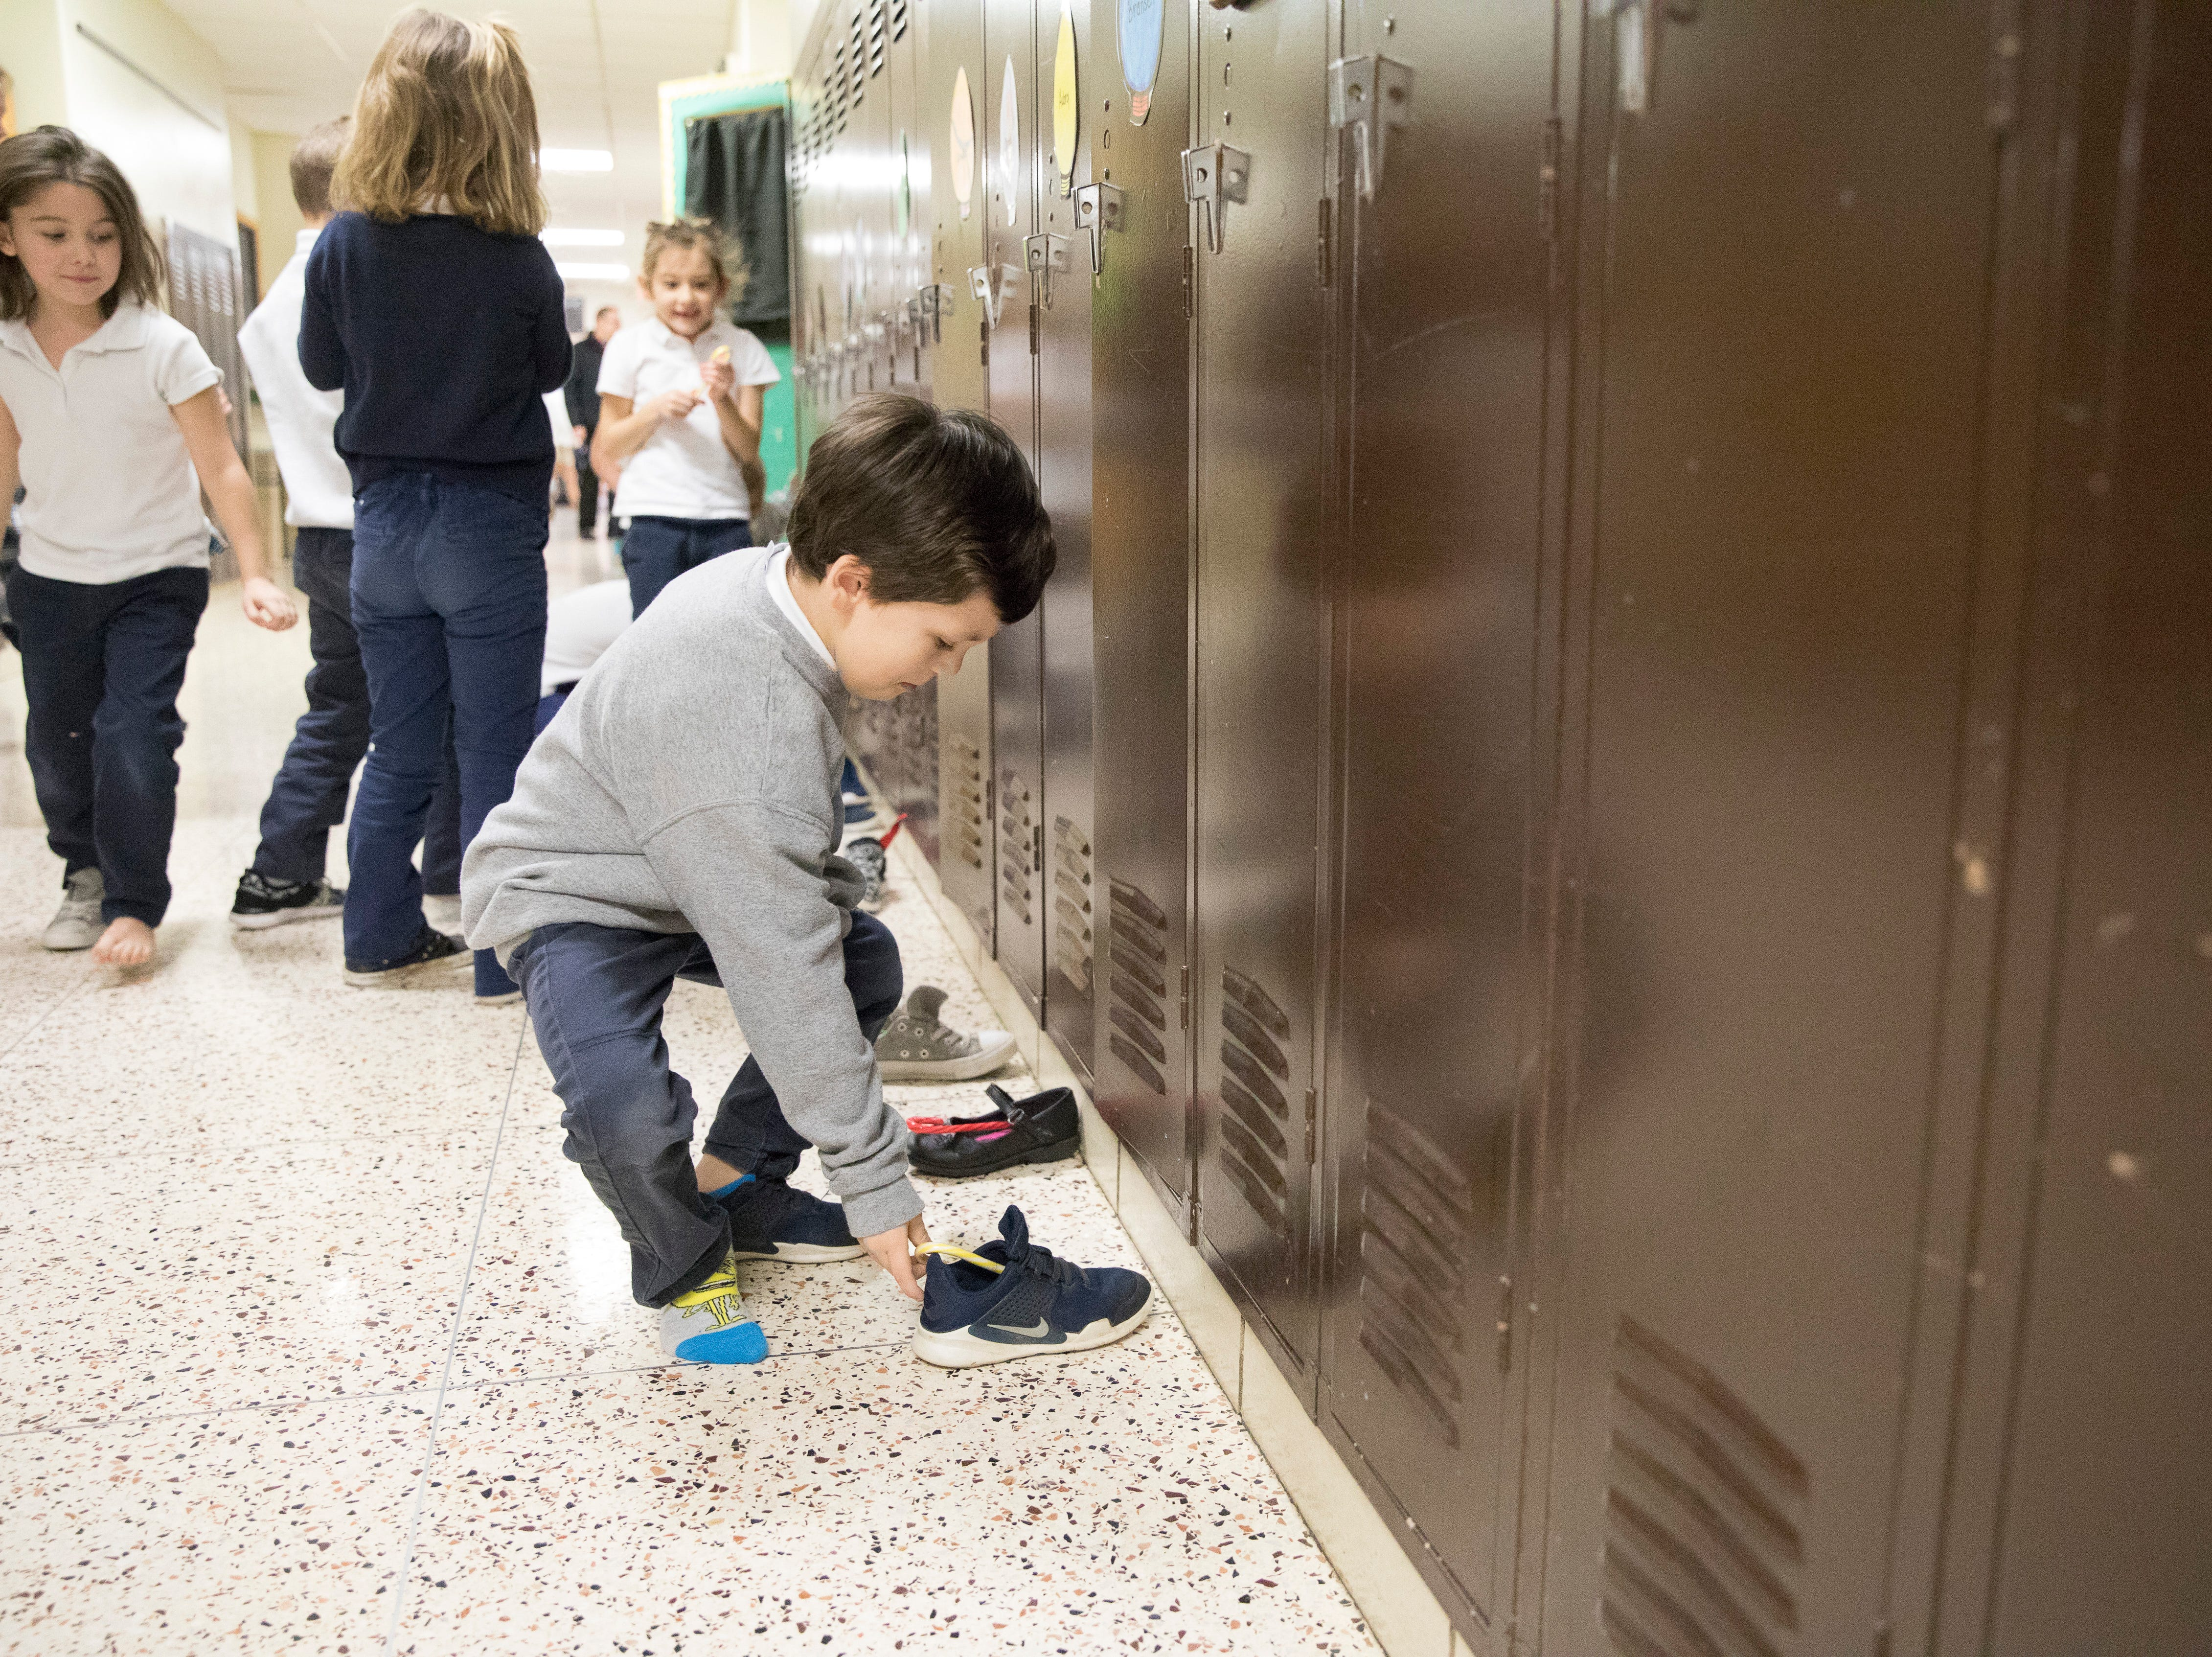 Bransen Kight picks up his shoes outside the hallway after candy canes were left by St. Nicholas at Bishop Flaget Middle School on December 6, 2018. Today, St. Nicholas is recognized as the originator of Santa Claus and was known for his generosity and love of children by using his inheritance to help the needy, sick, and suffering.